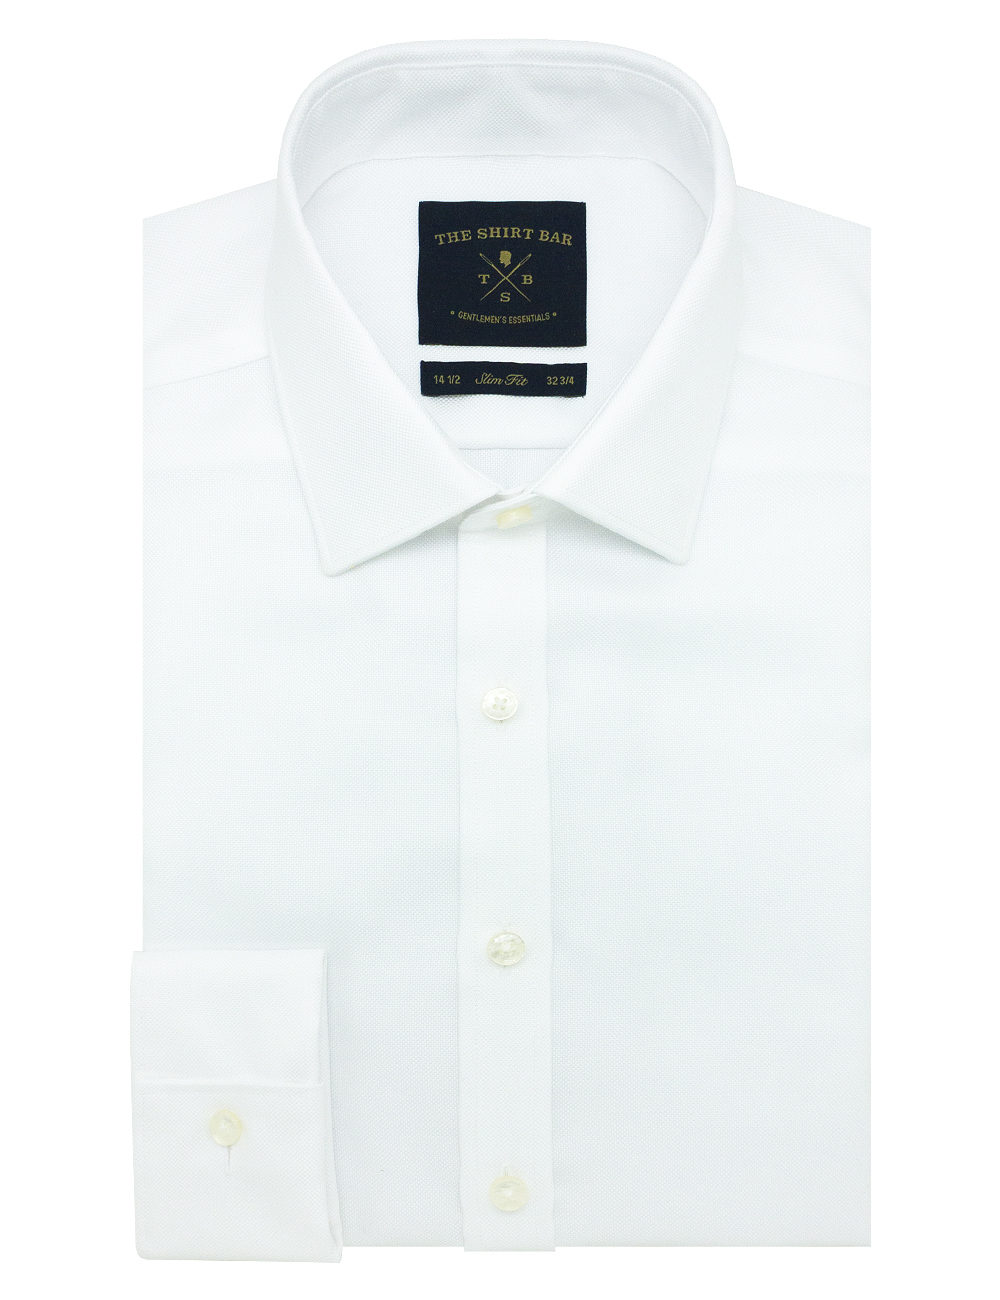 Slim Fit Double Ply Non-iron 100% Premium Cotton Solid White Long Sleeve Double Cuff with Long Lasting White Finishing SF1D1.NOS